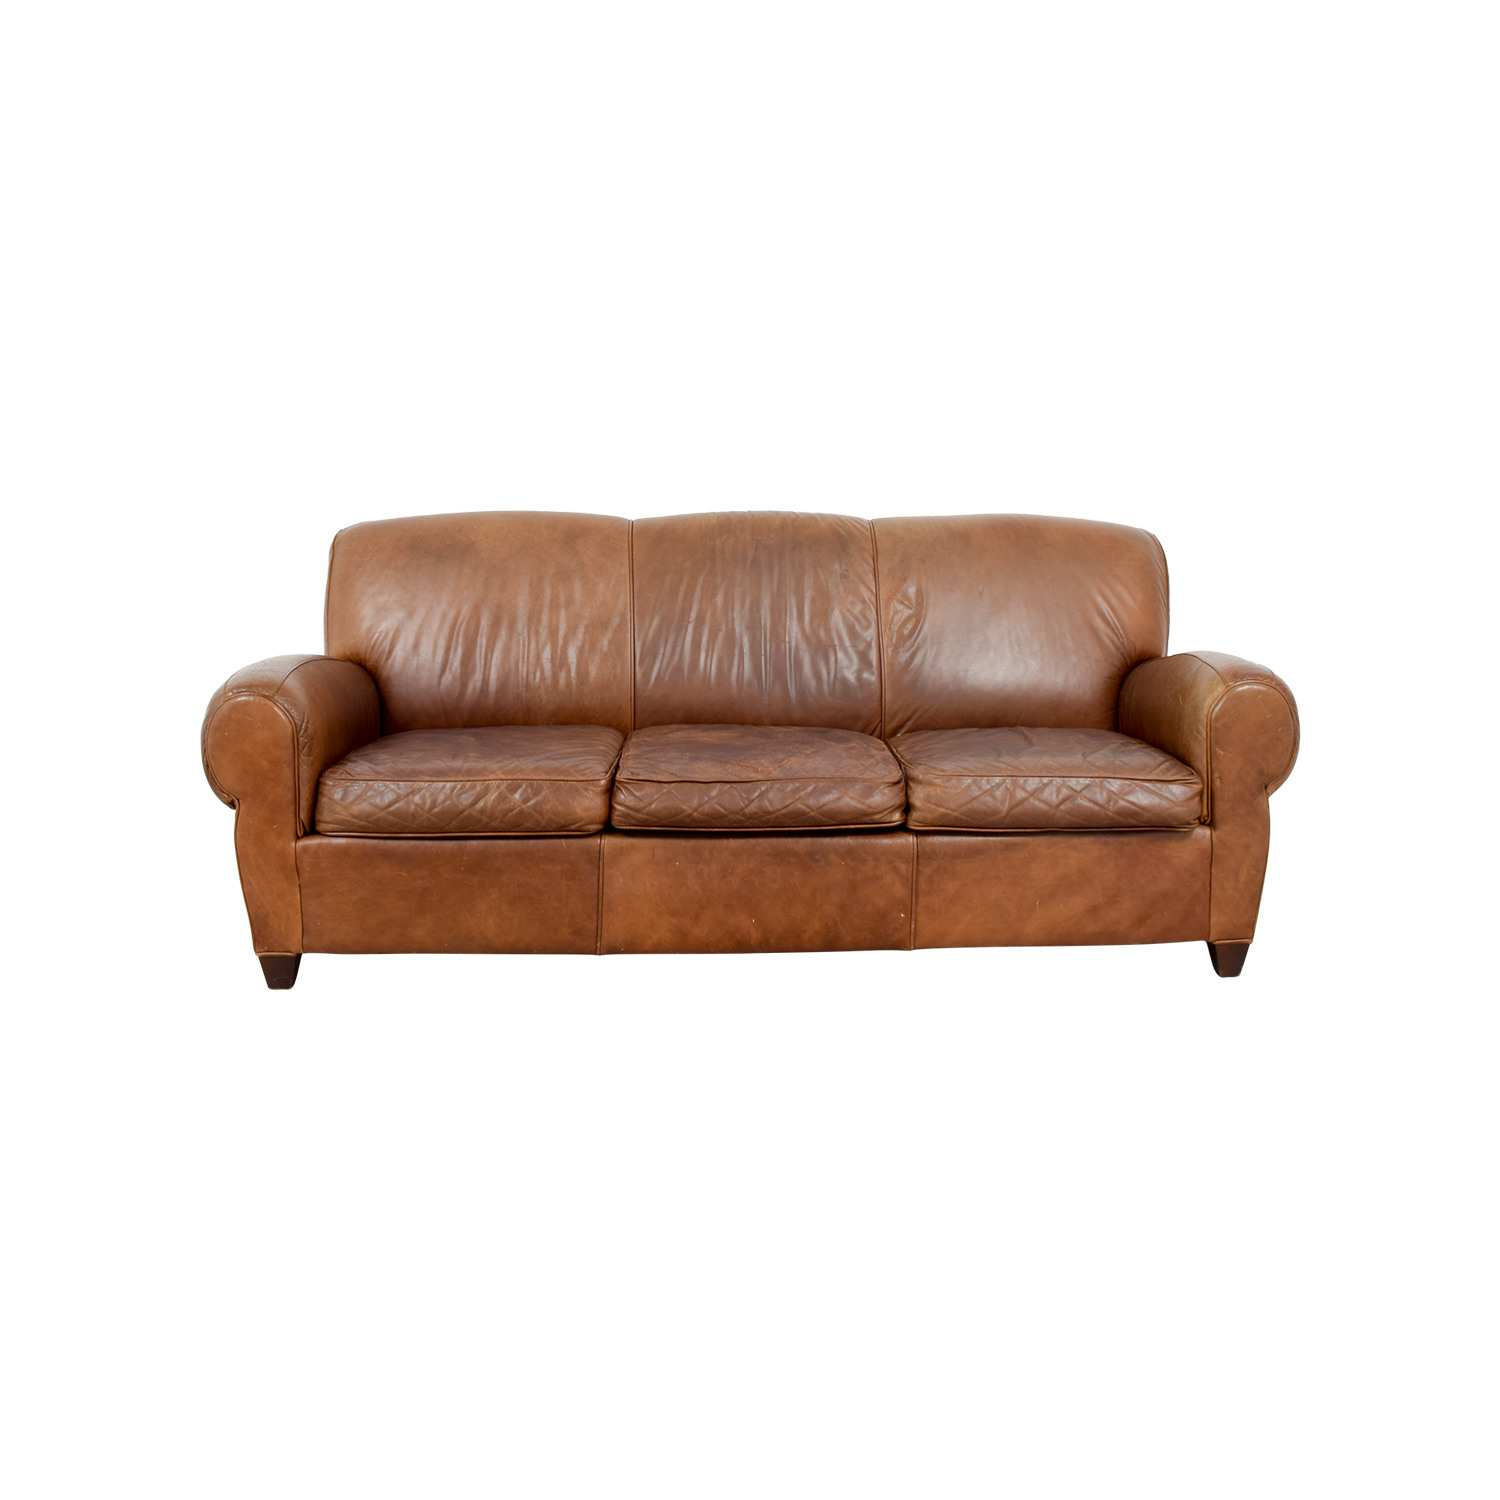 Pottery Barn Cameron Sofa Reviews Of Awesome Pottery Barn Sofa With Regard To Cameron Sofa Chairs (Image 19 of 20)